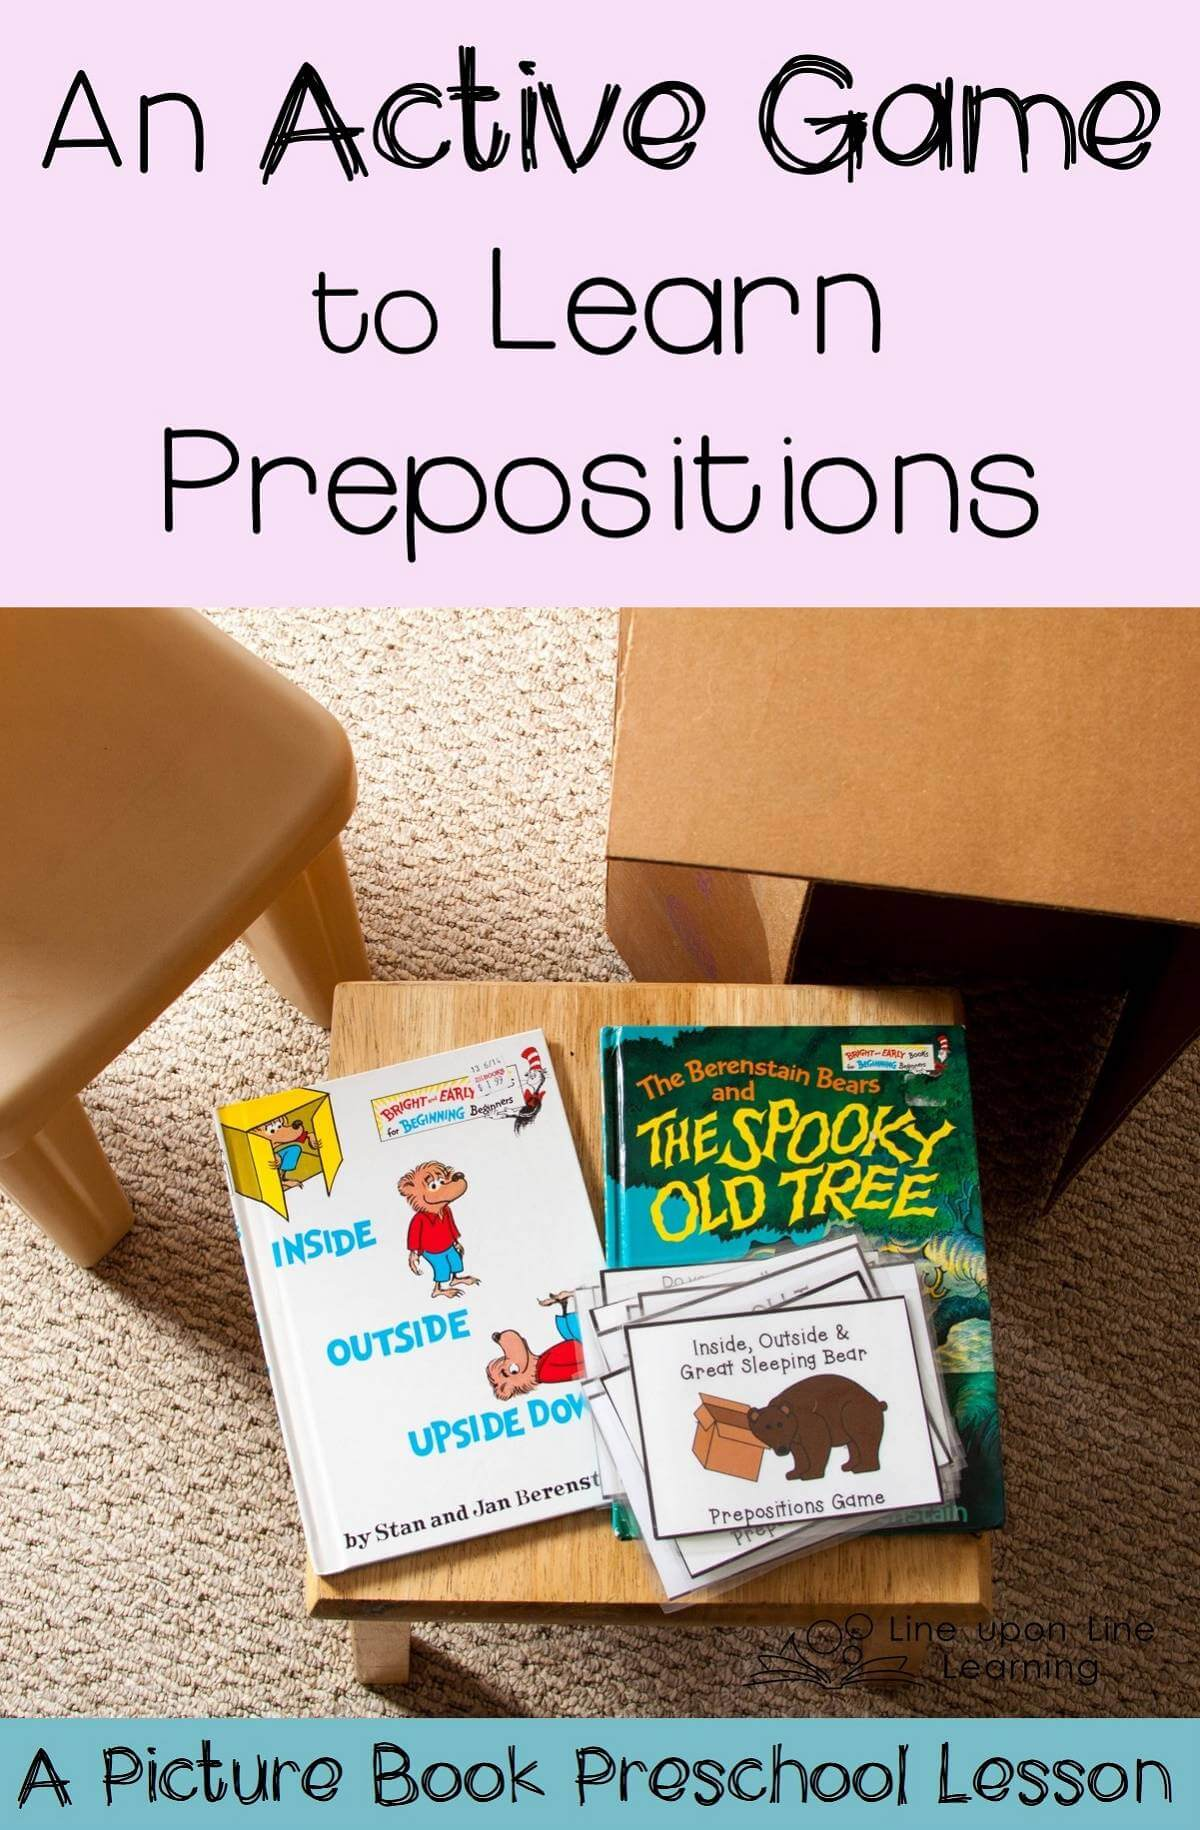 Prepositions are so much fun! Just like the bears in some favorite books, we like to go inside, outside, over, through and around!